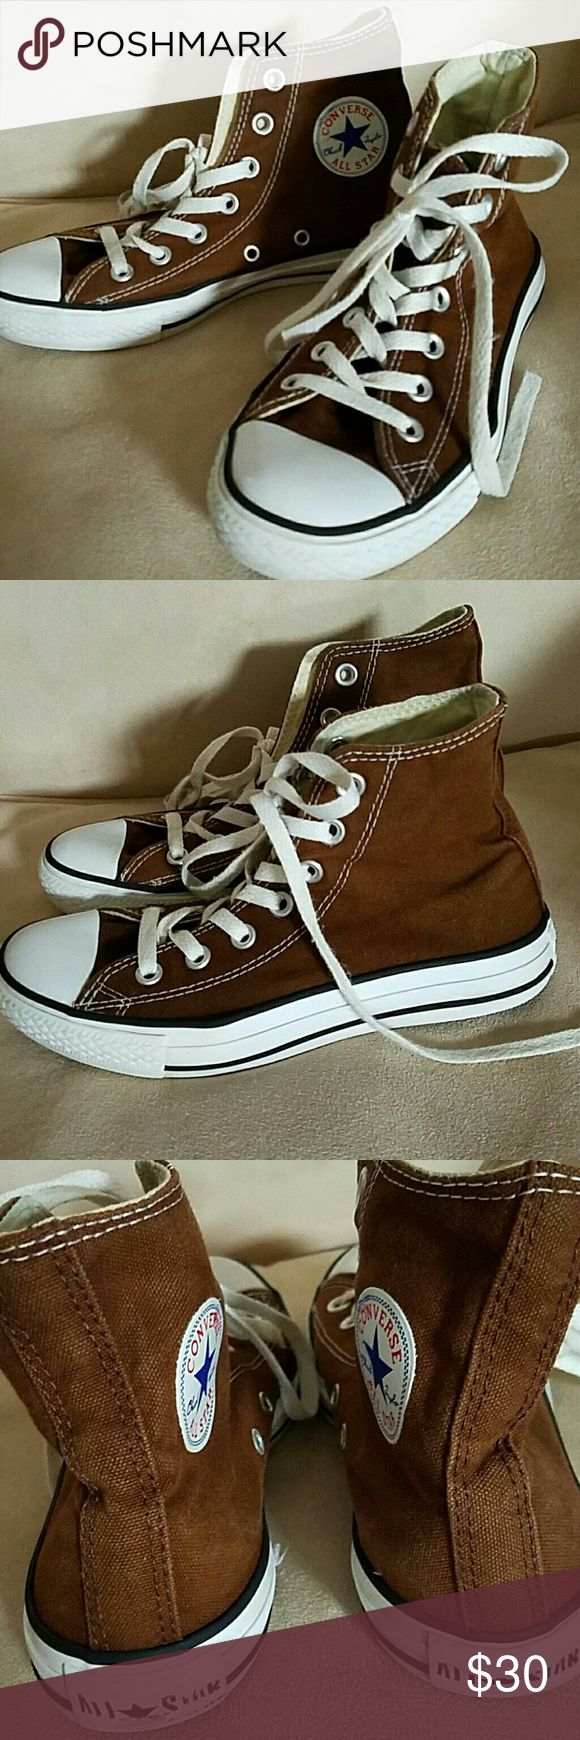 Brown Converse High Tops A fabulous pair of sneakers in excellent used condition.  (You will definitely need new laces, however   these are not in good condition ) Feel free to ask me any questions or make an offer! Converse Shoes Sneakers